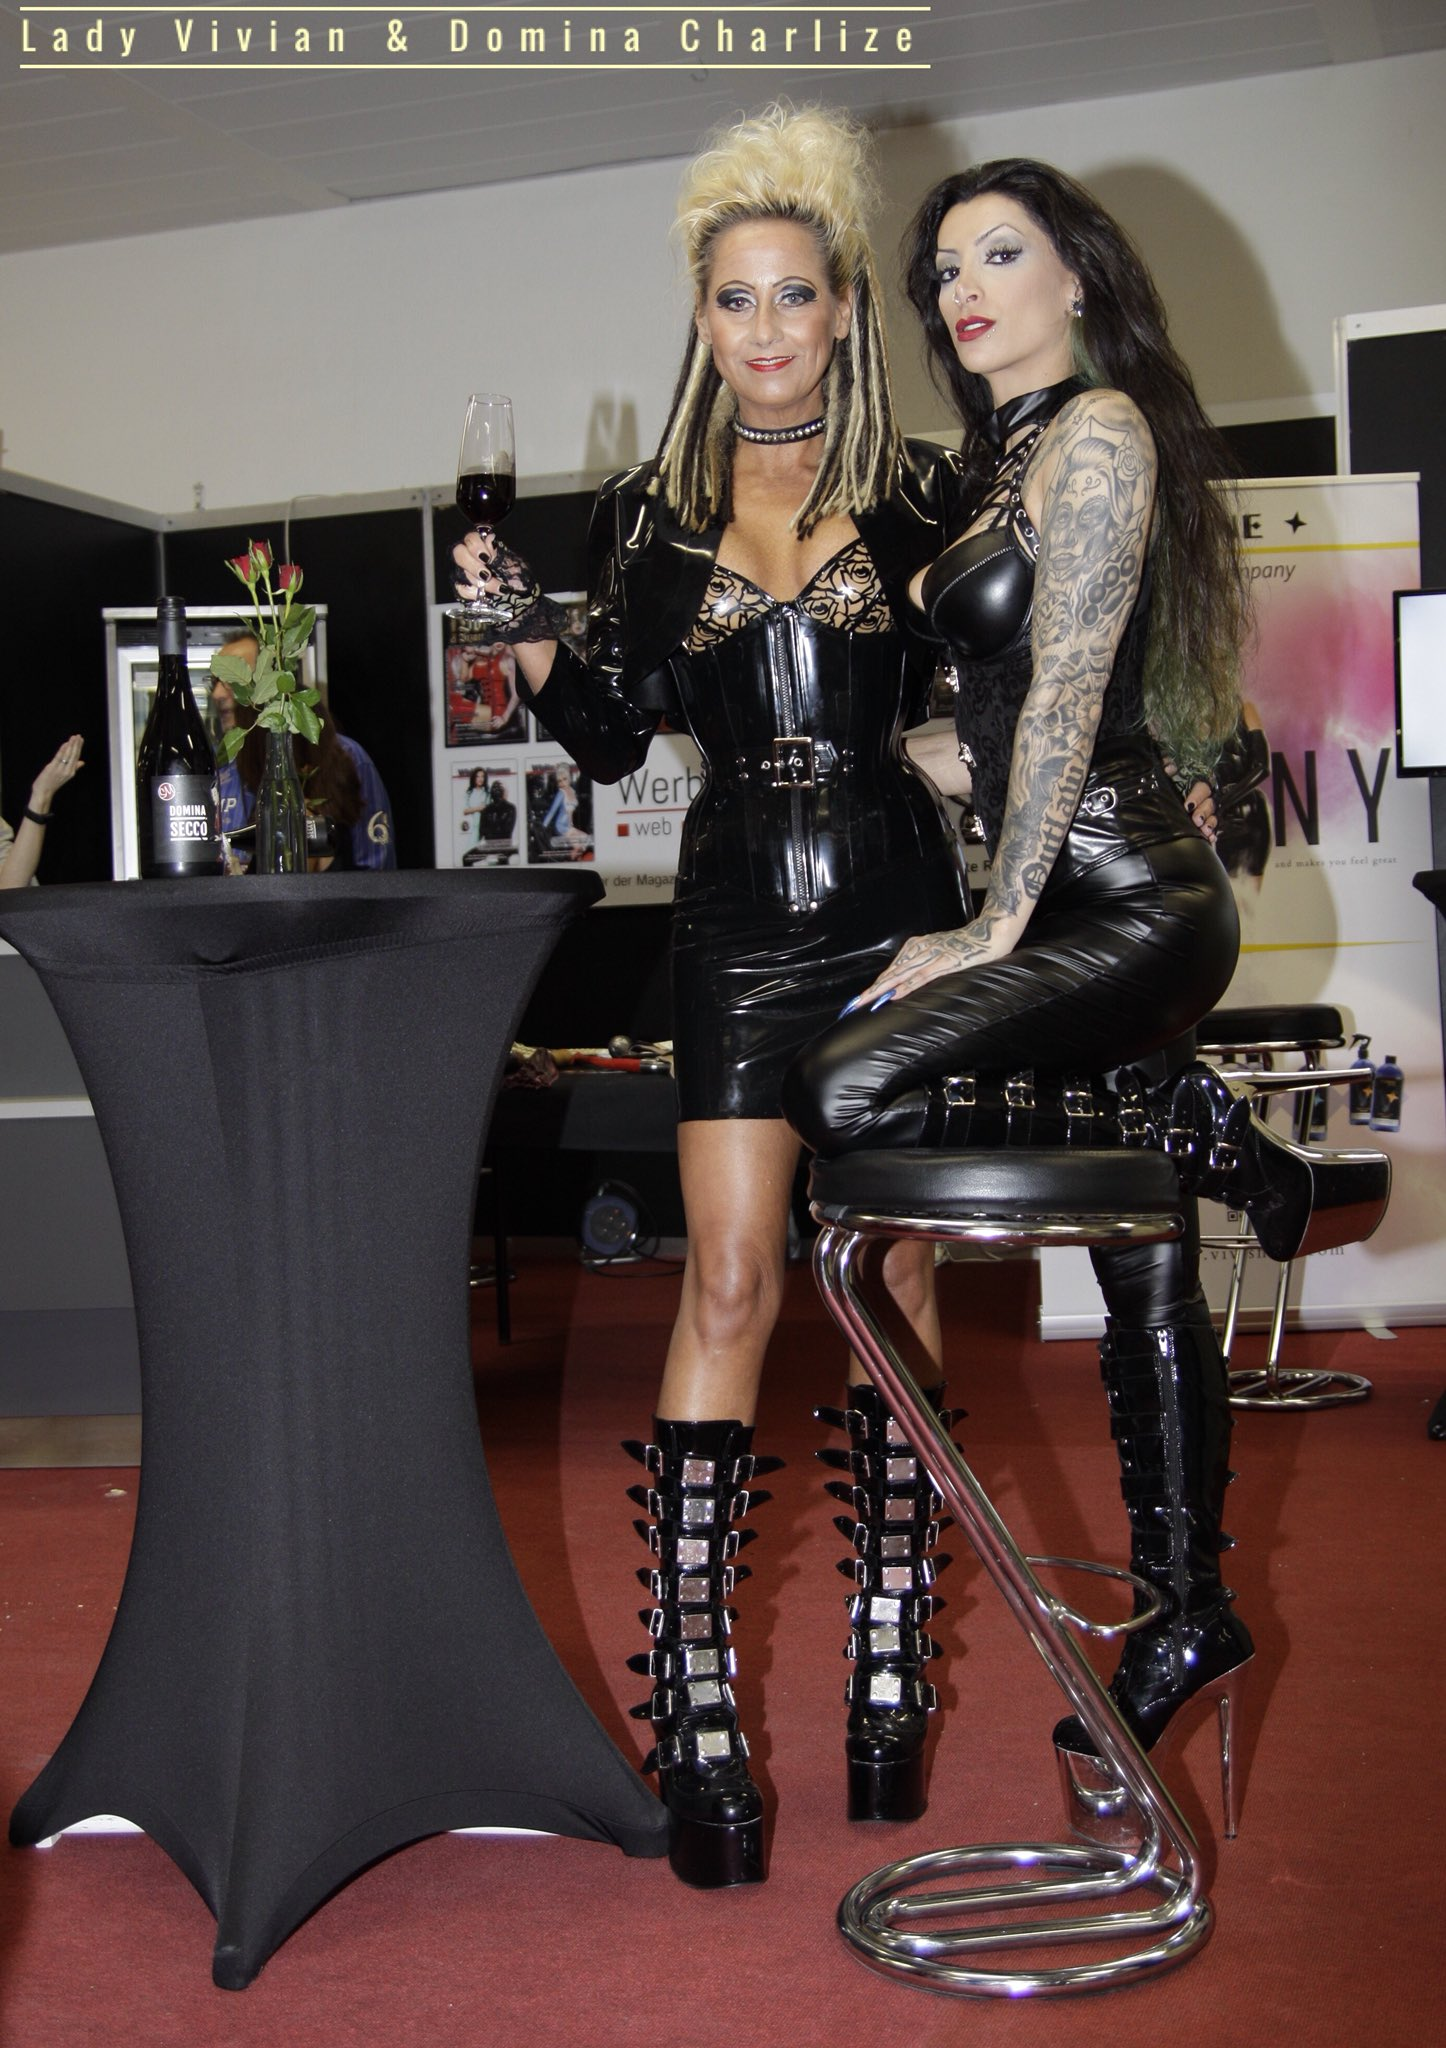 Bdsm messe hamburg